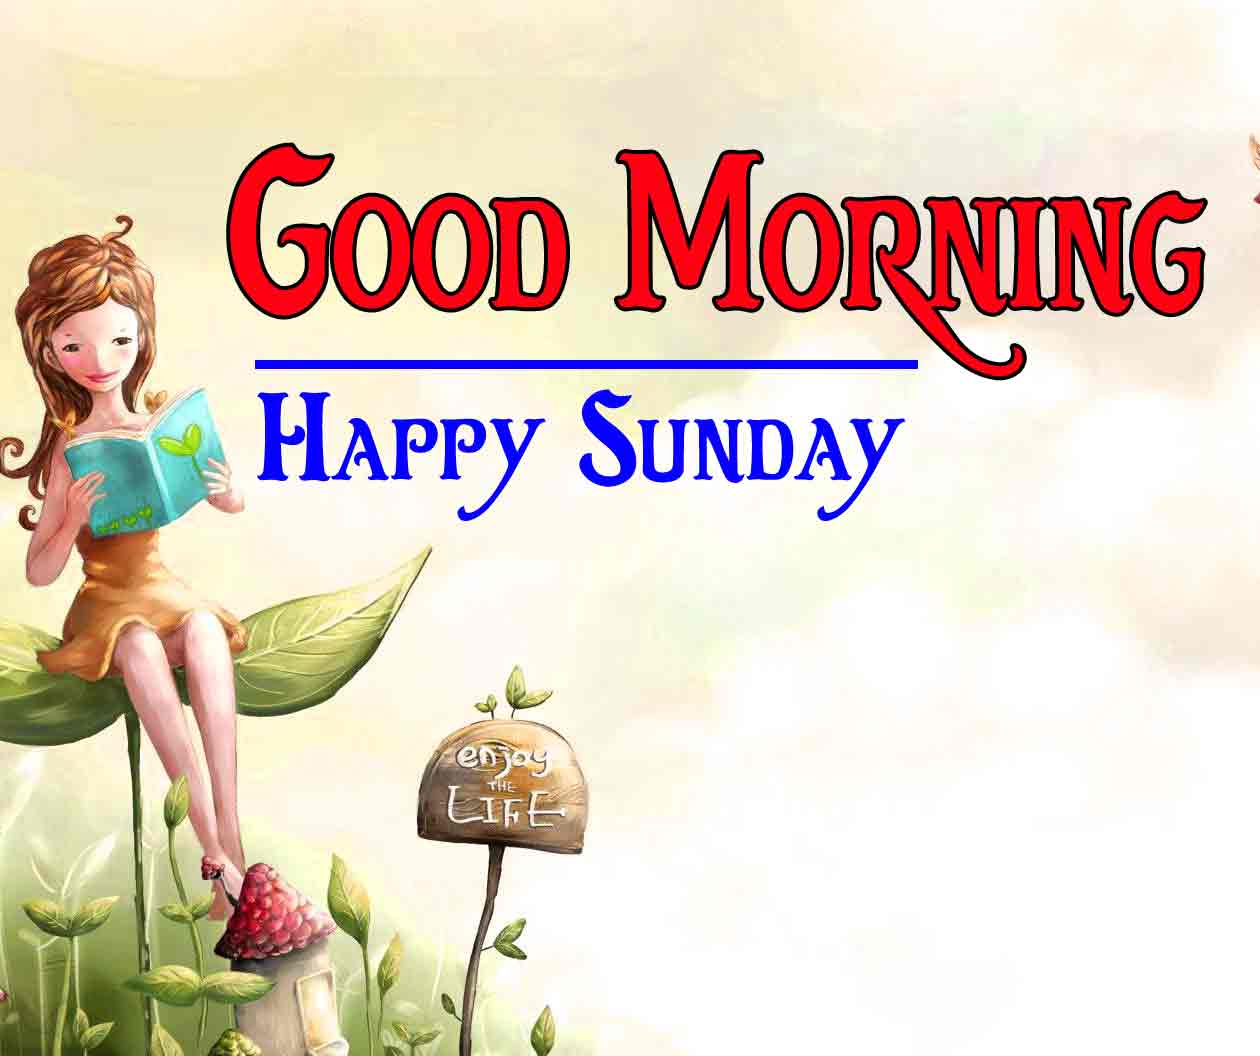 Good Morning 4k HD Images HD Photo Wallpaper Free Download